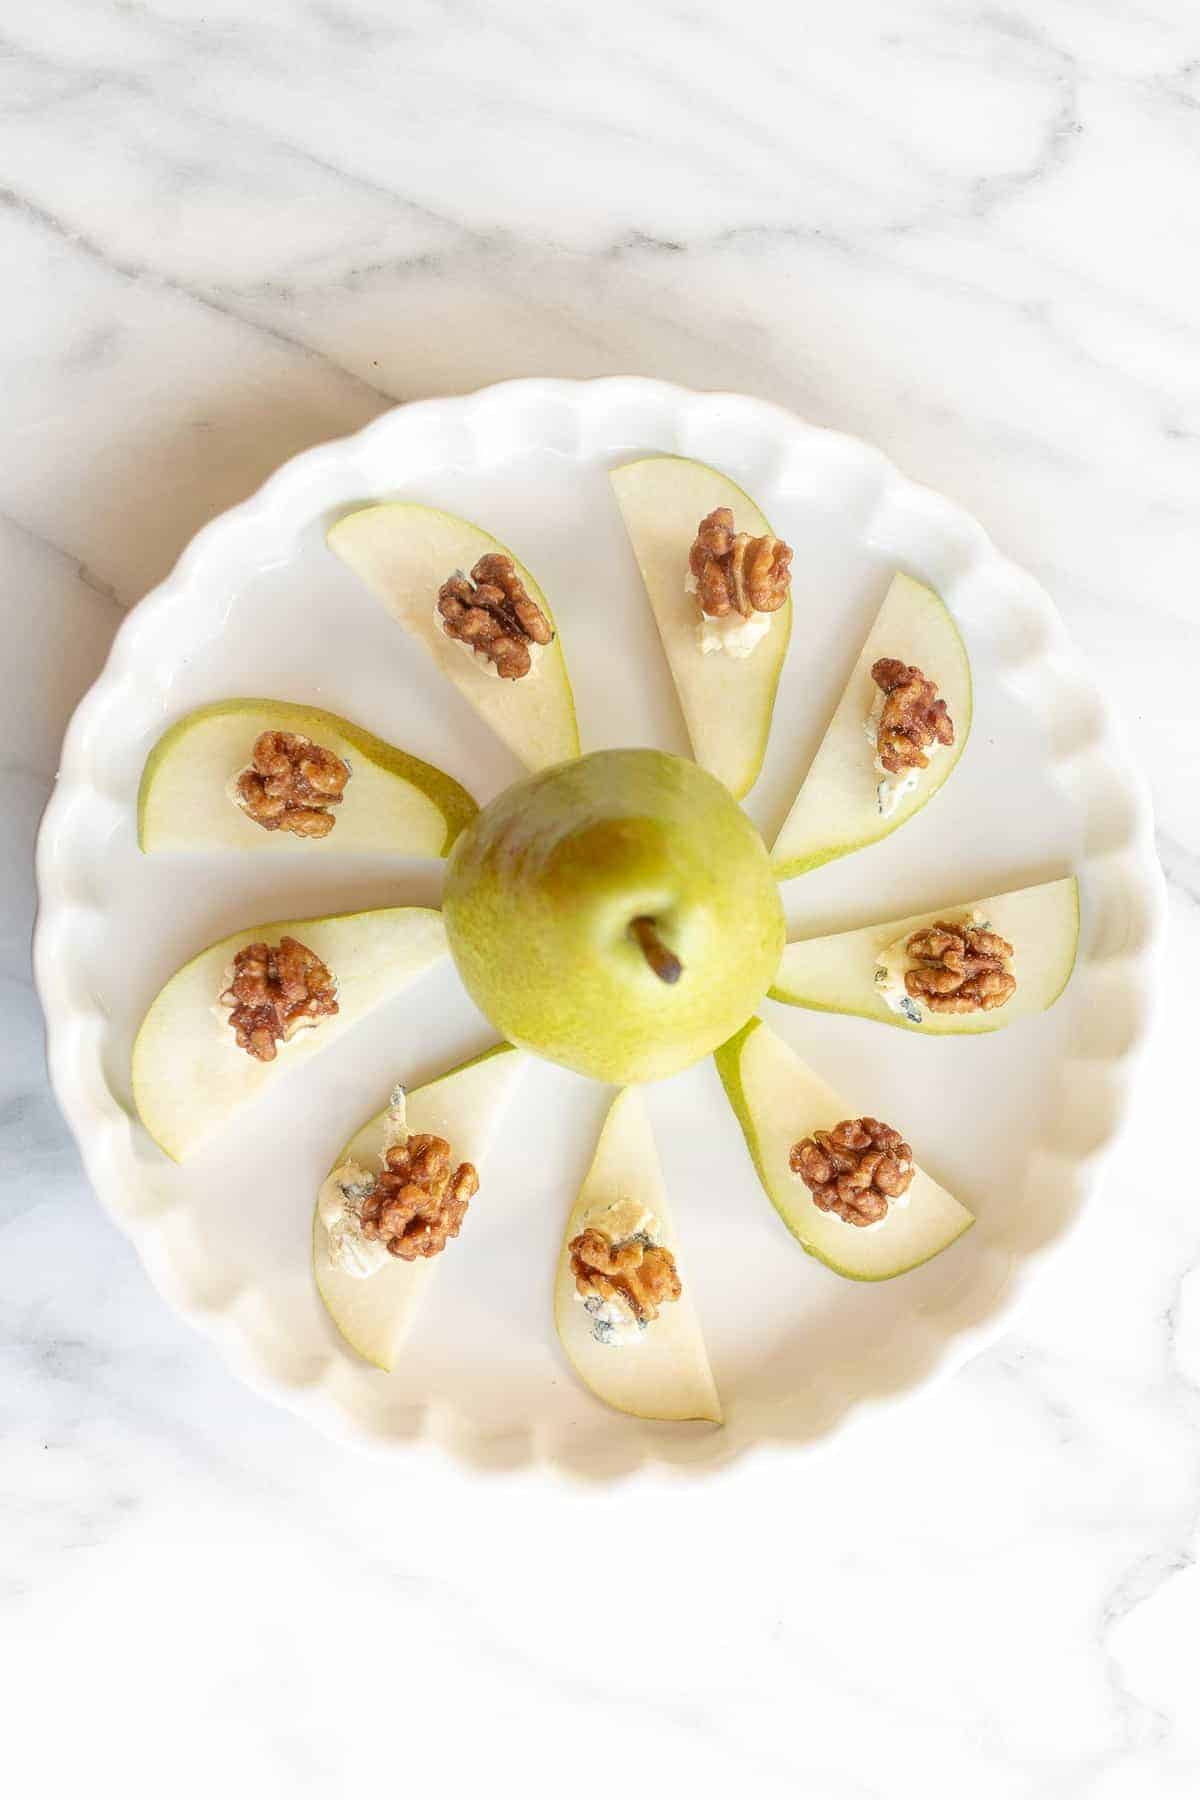 a healthy appetizer of pears with blue cheese and walnuts on a platter